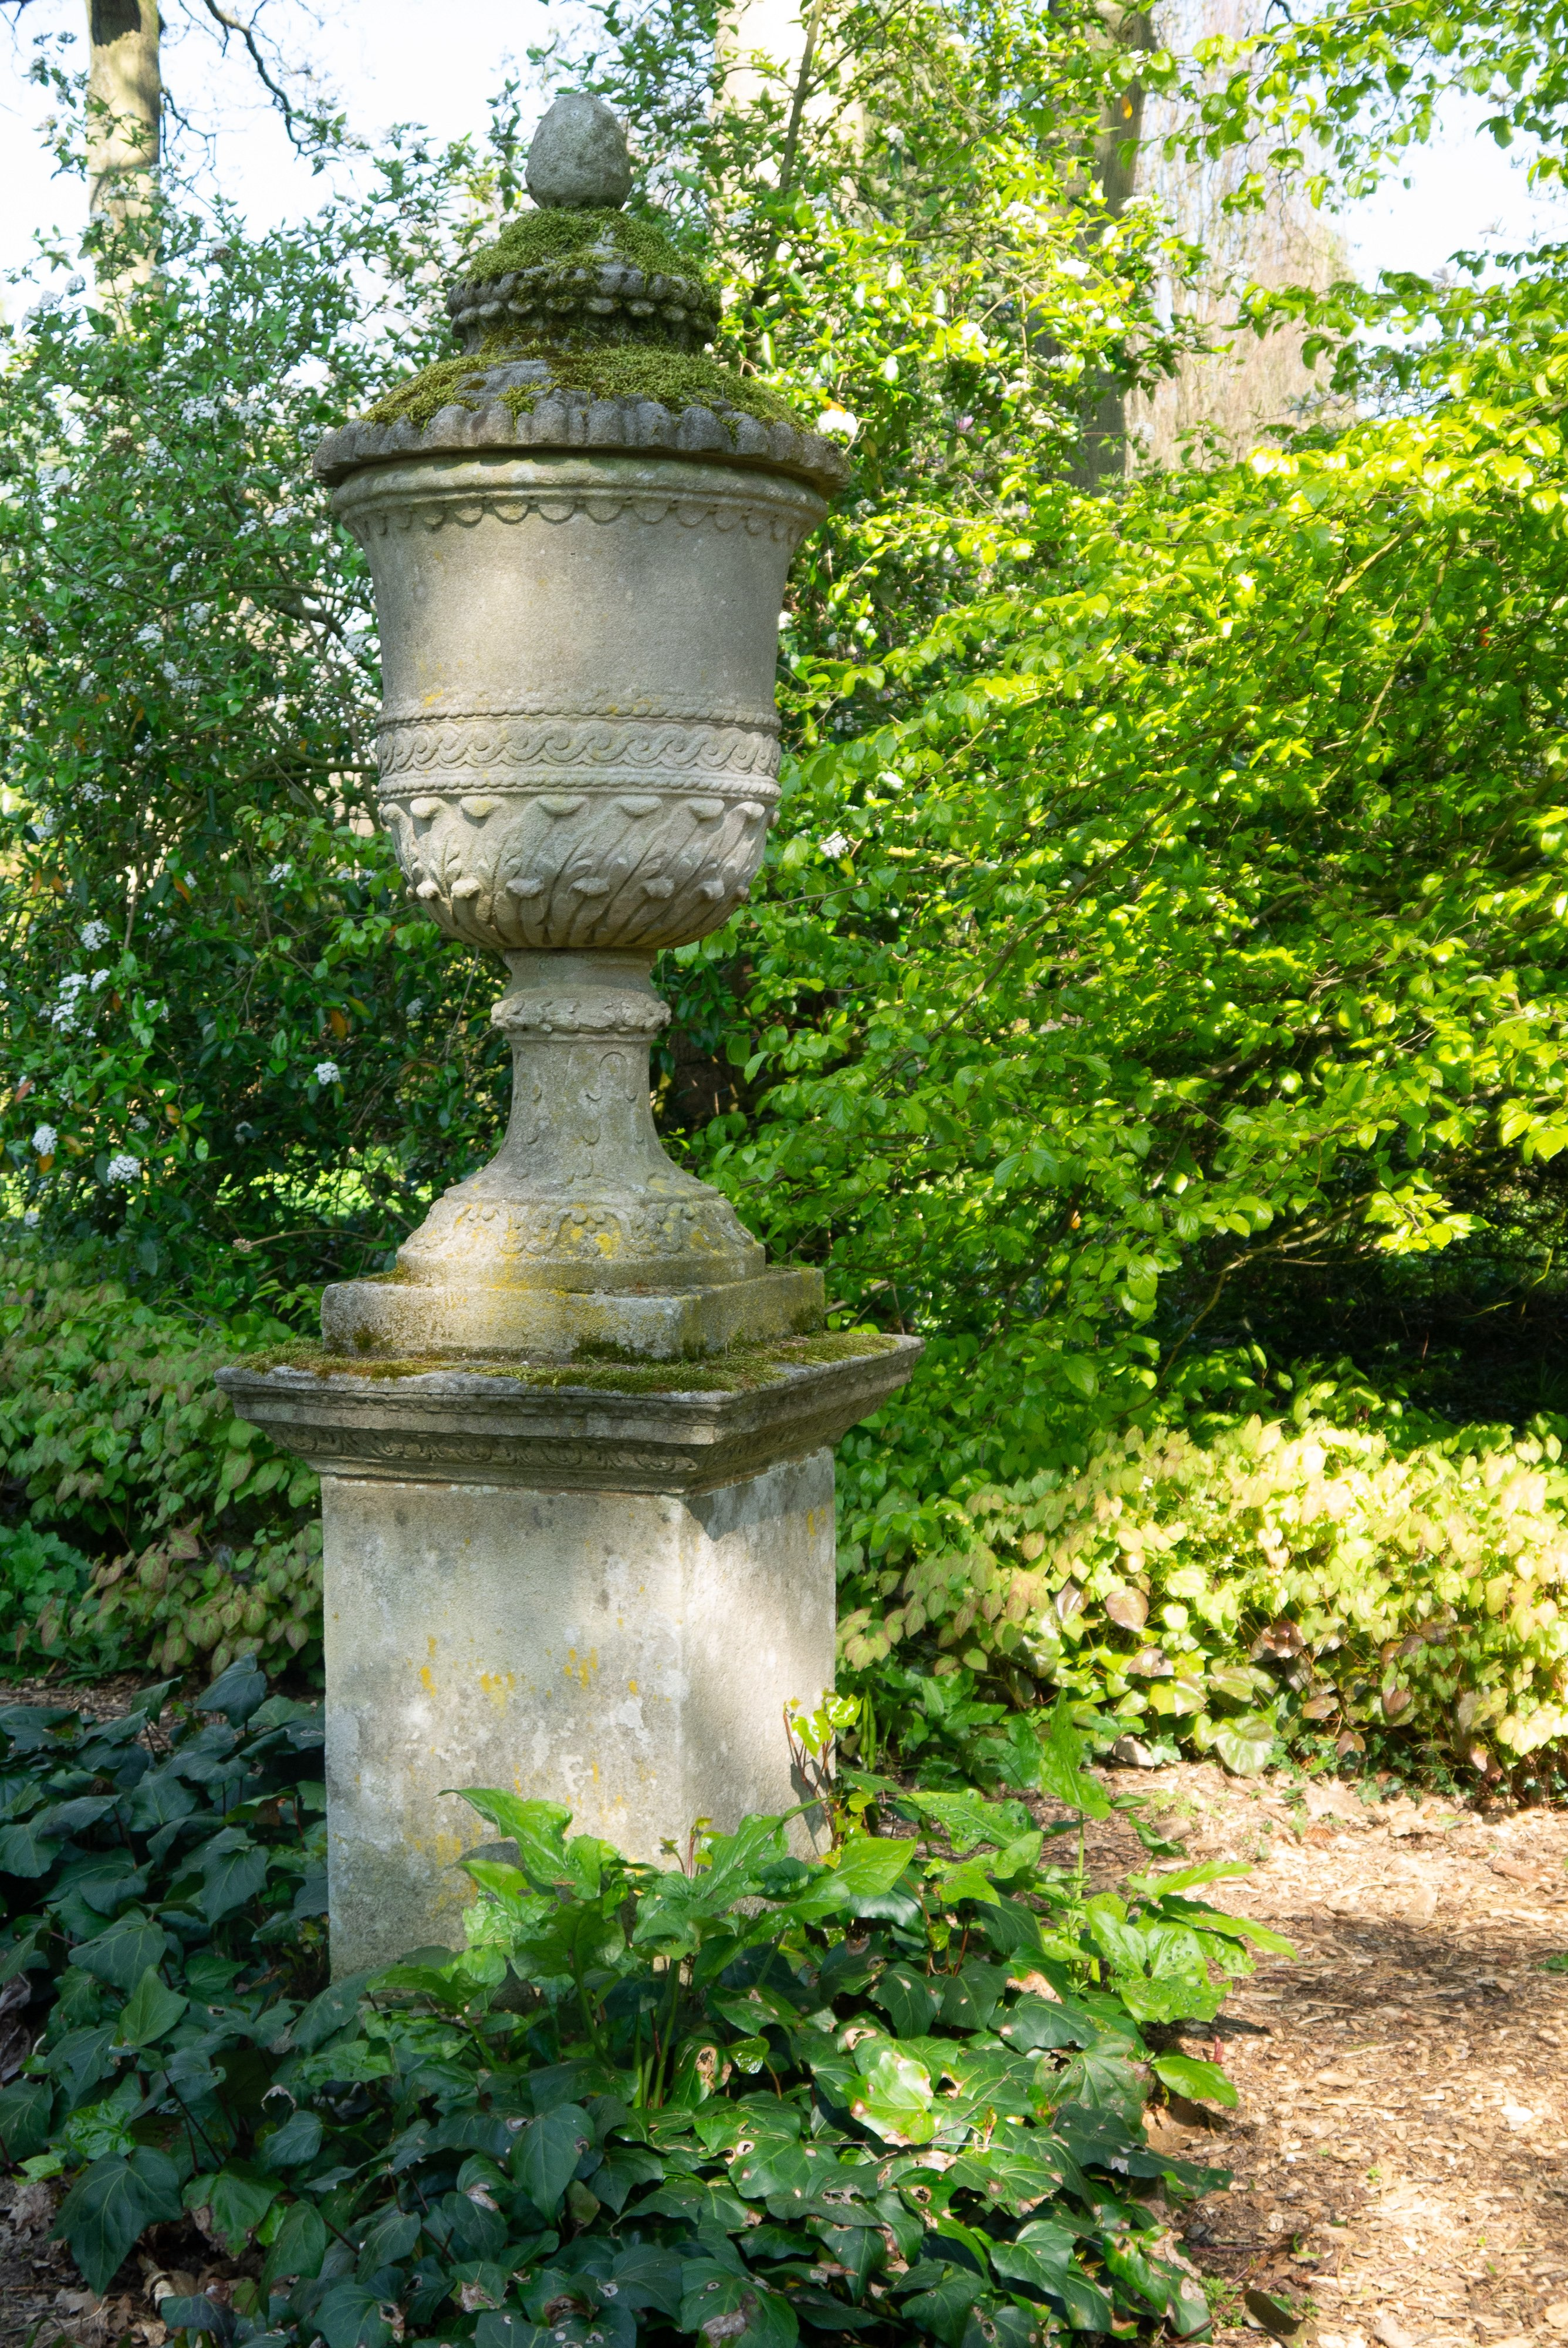 Cast stone garden urn with leafy green background